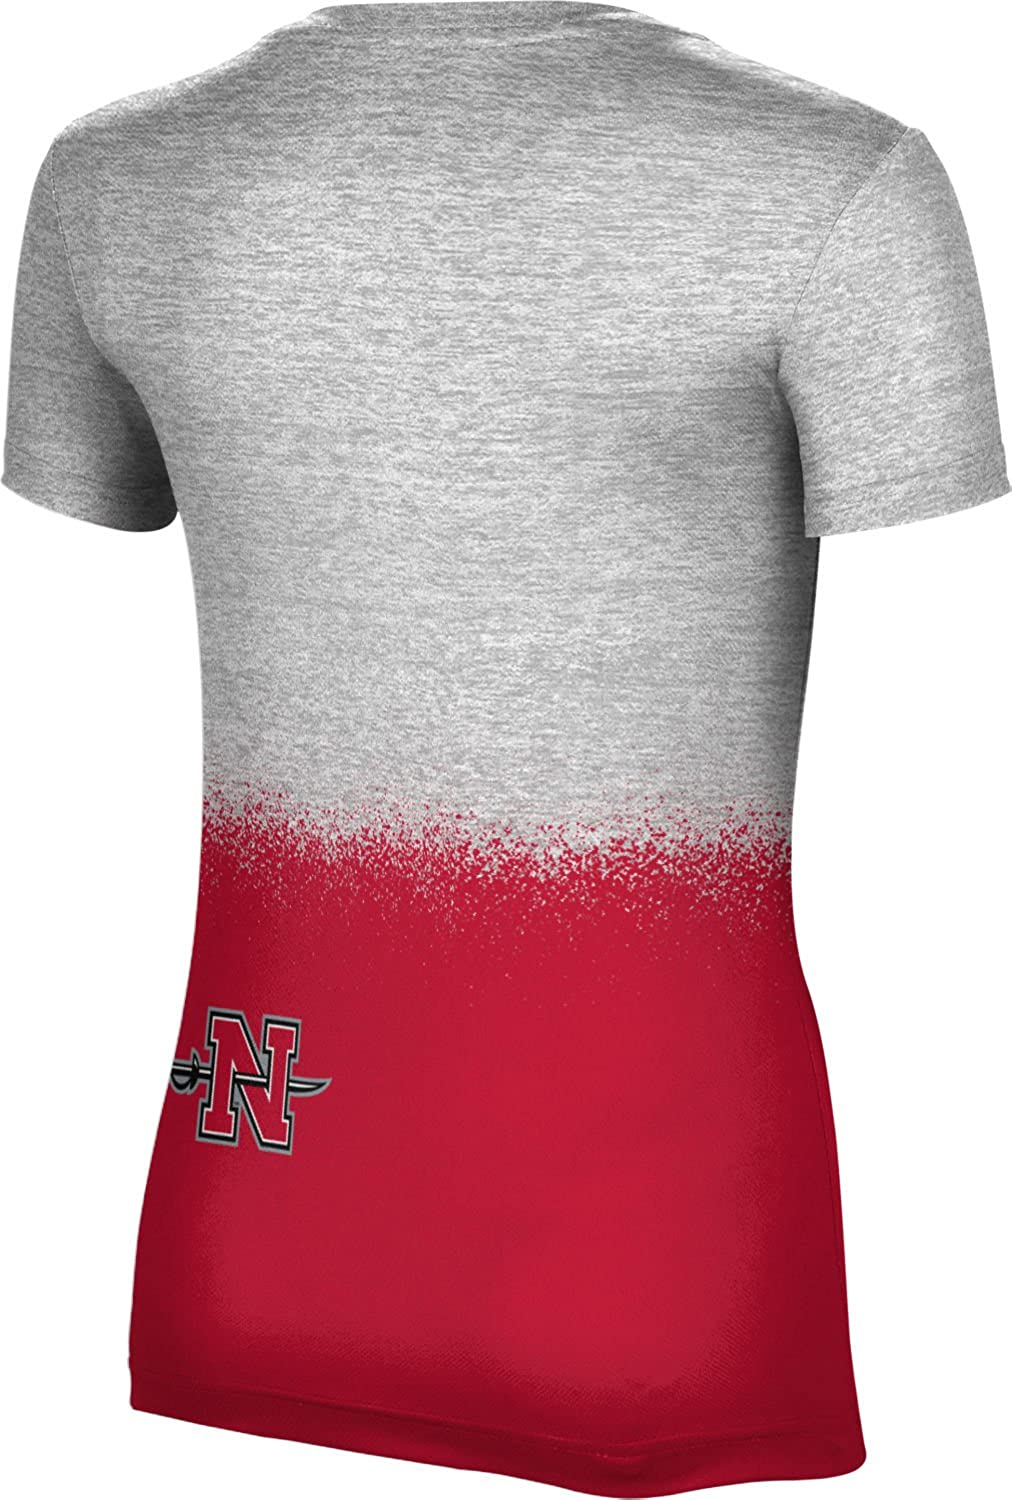 Spray Over ProSphere Nicholls State University Girls Performance T-Shirt